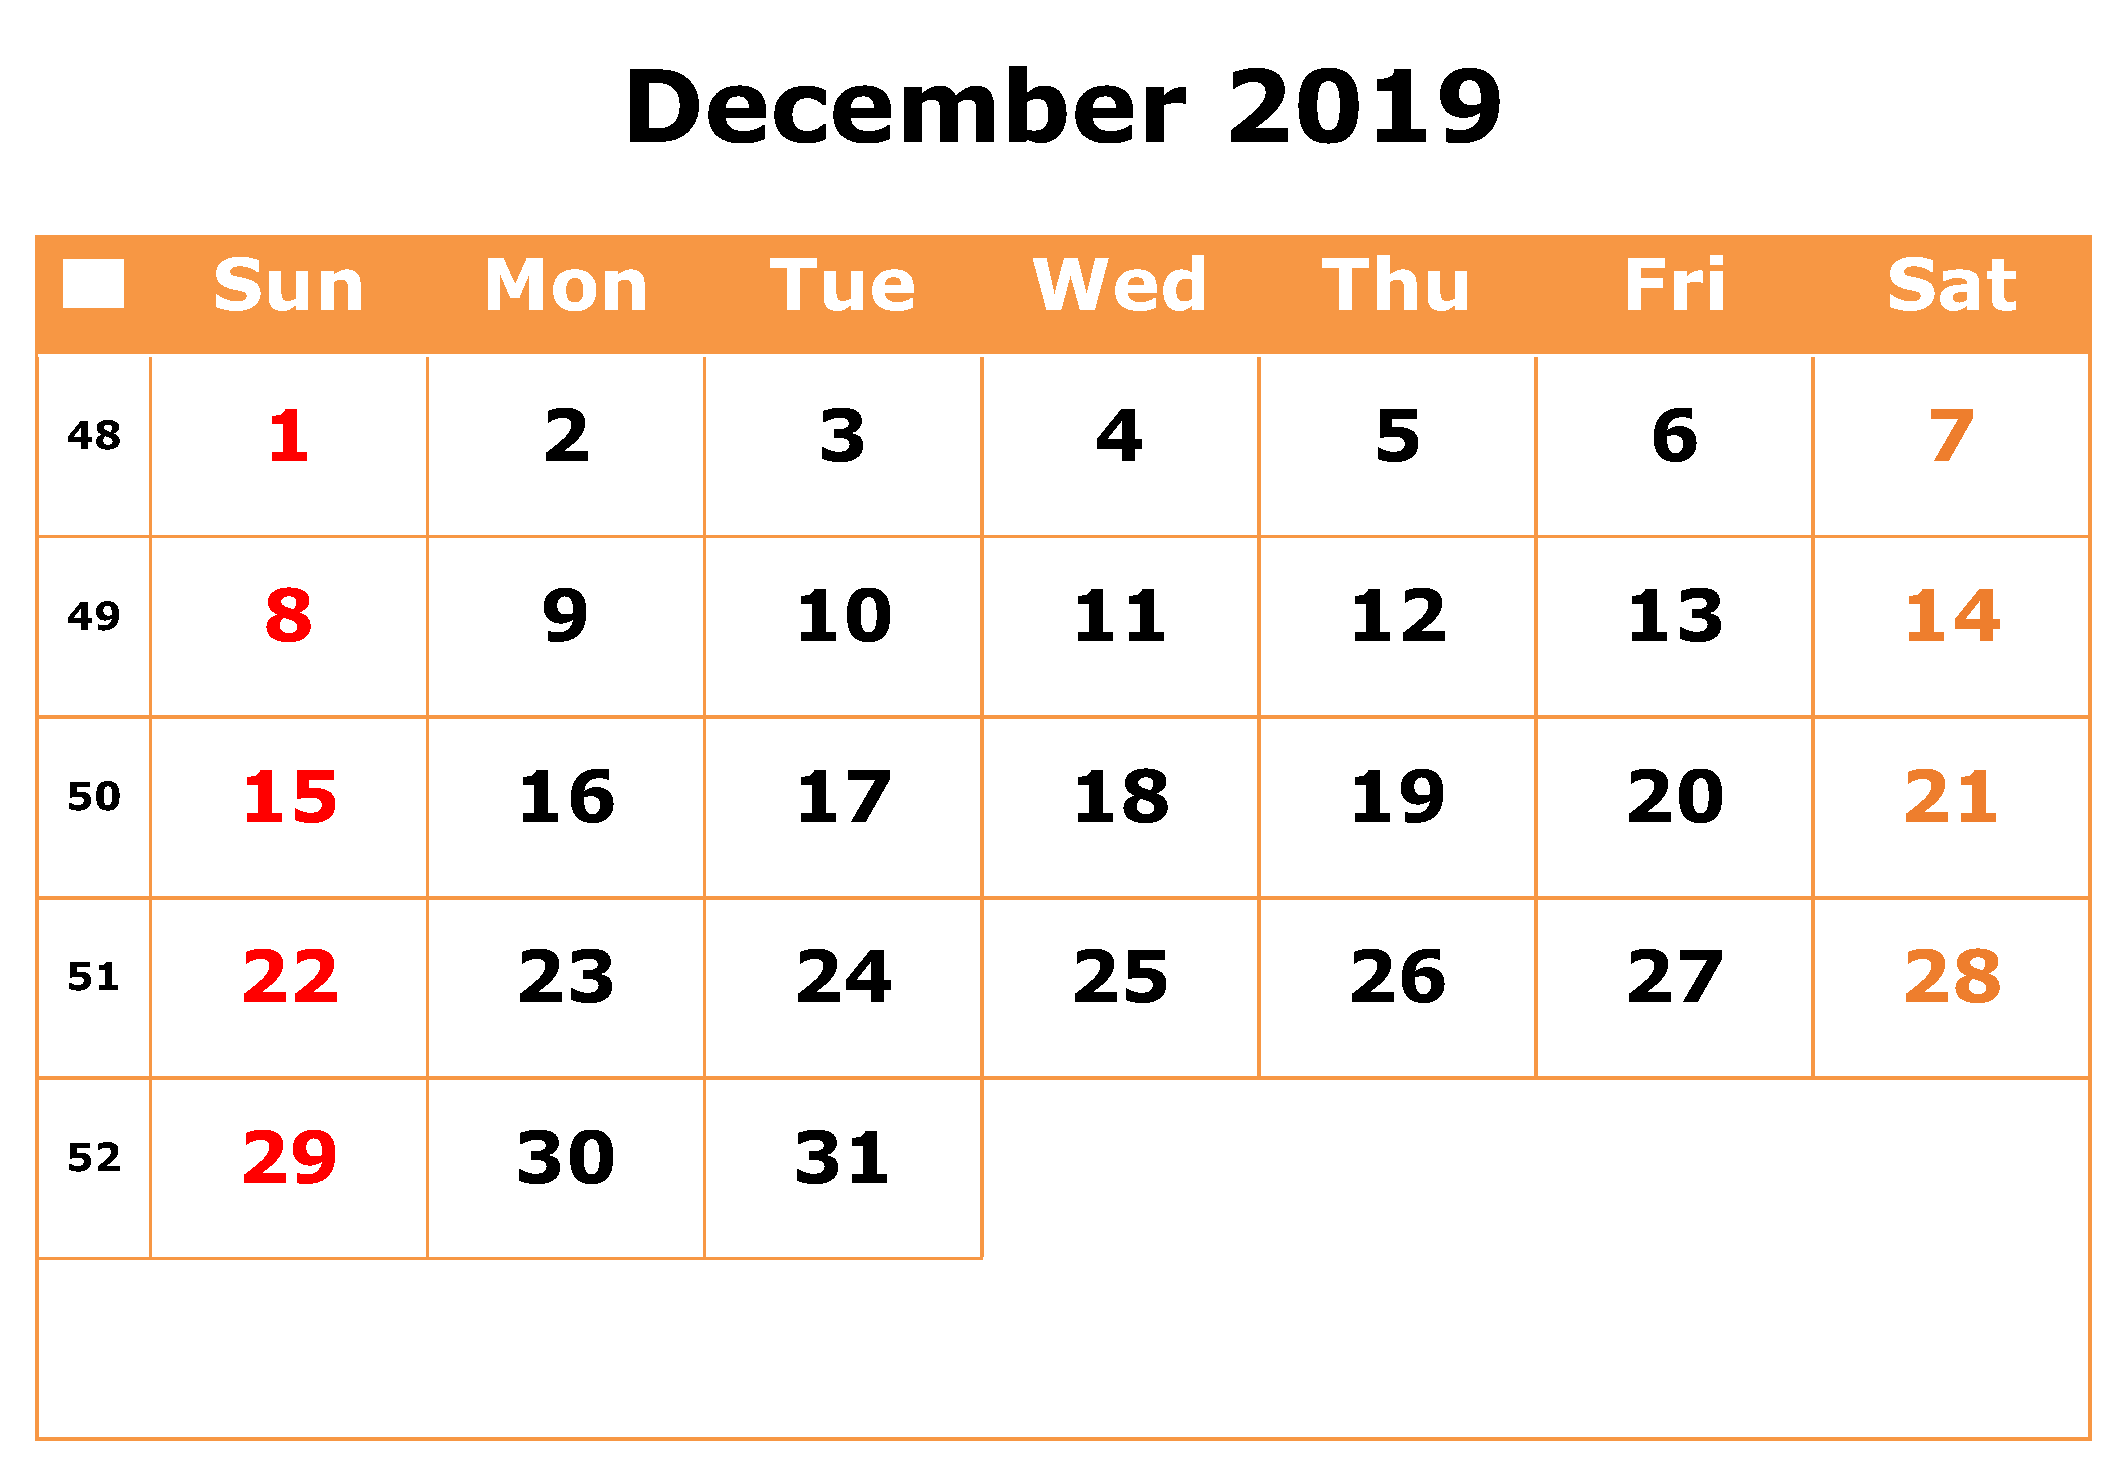 December 2019 Calendar UK Federal Holidays